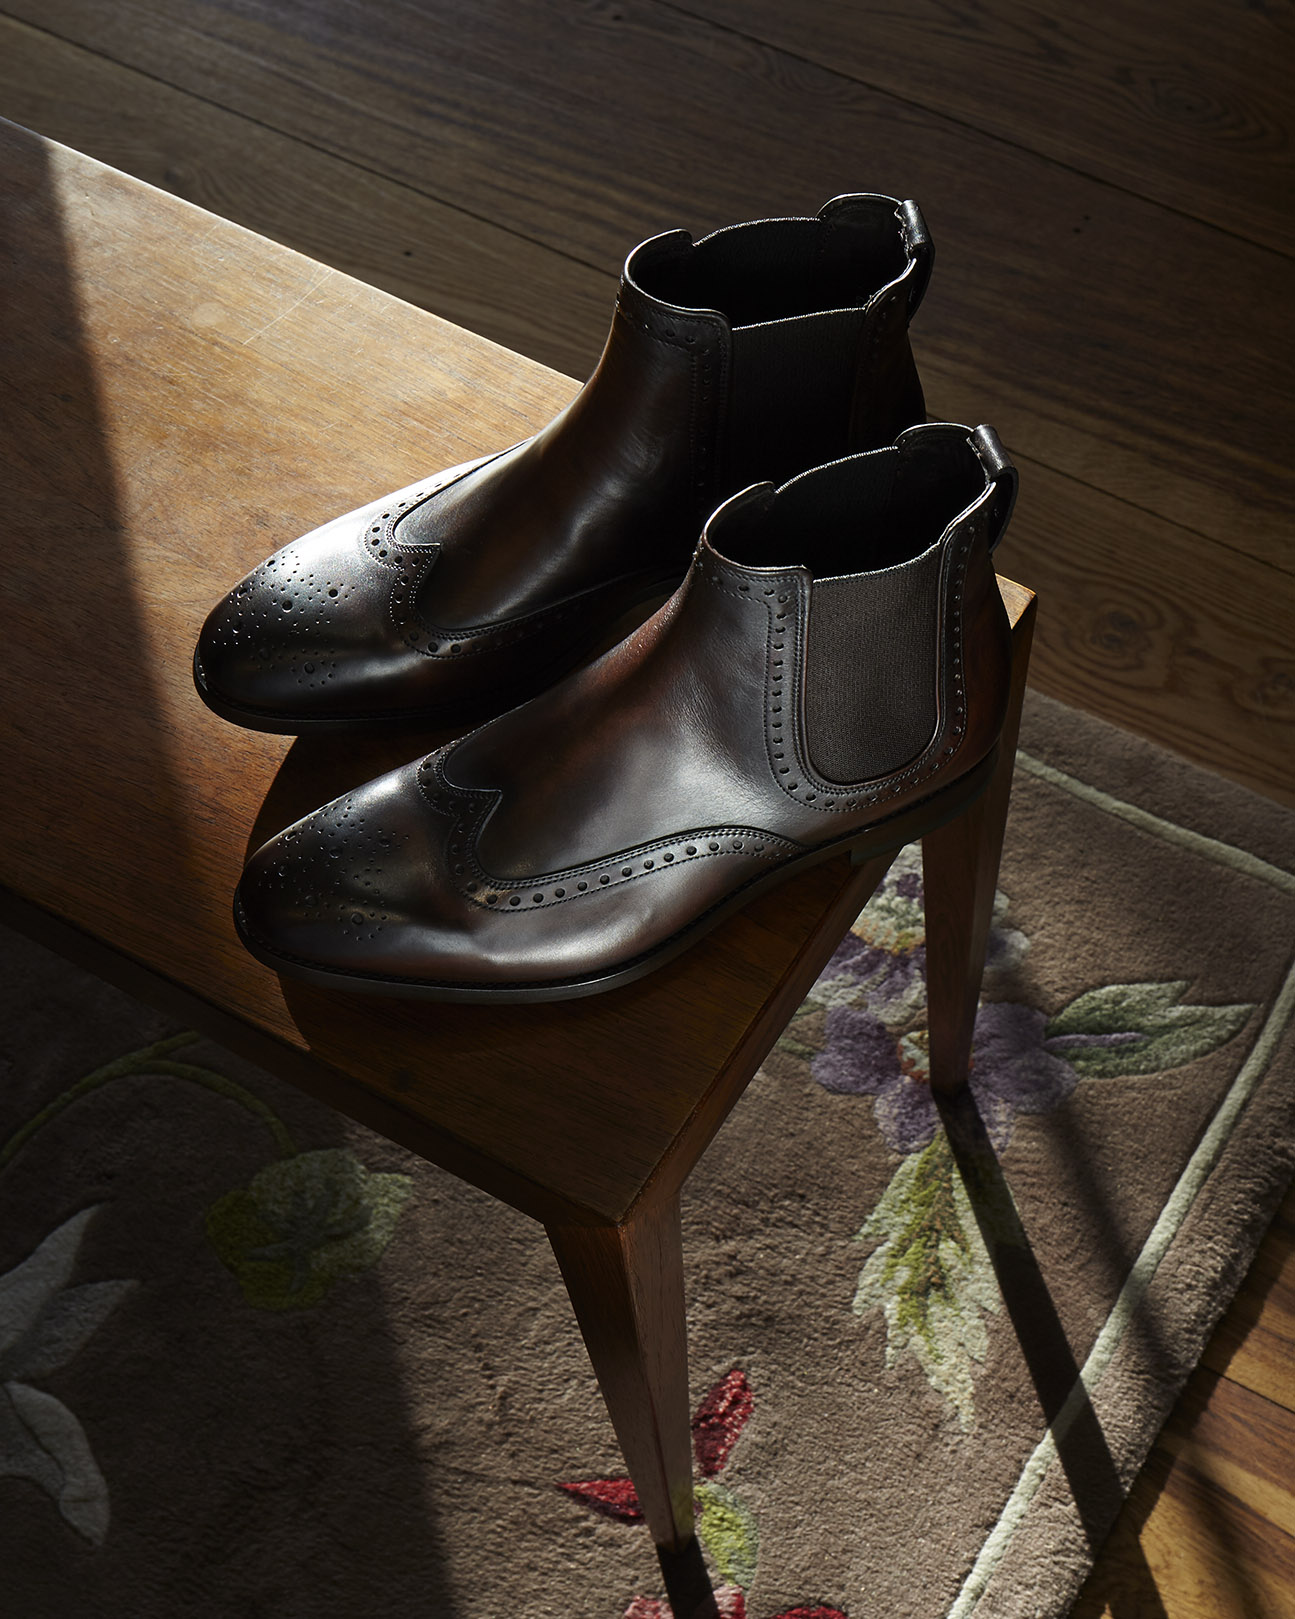 A still life image of Paul Smith boots with hard window light